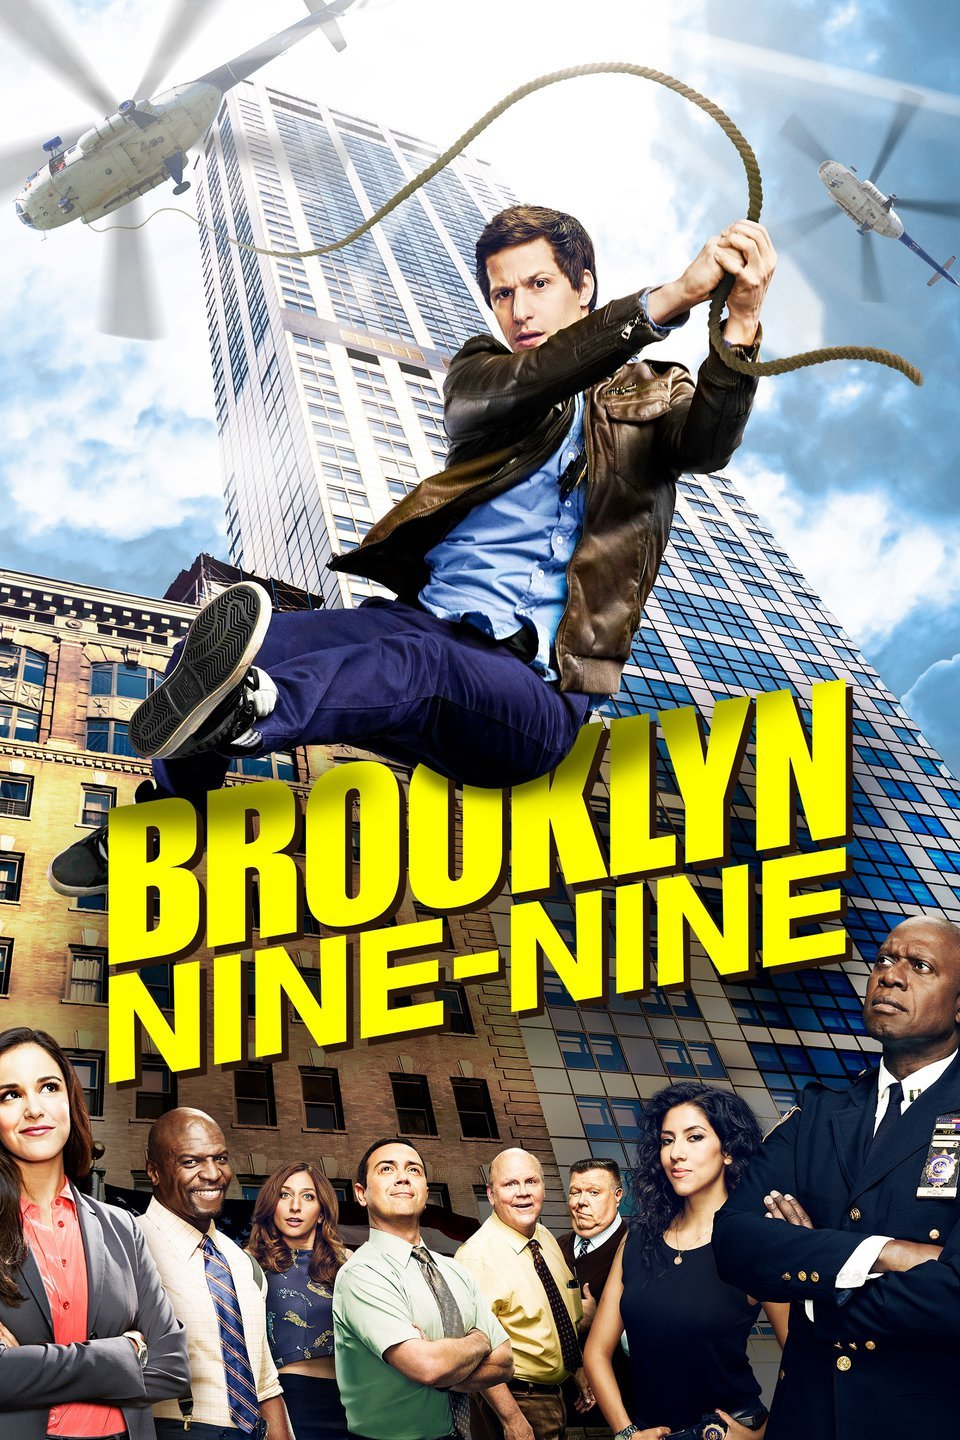 Brooklyn 99 season 5 Release Date on NETFLIX, [CAST], Plot And All The Latest Updates A Fan Must Know